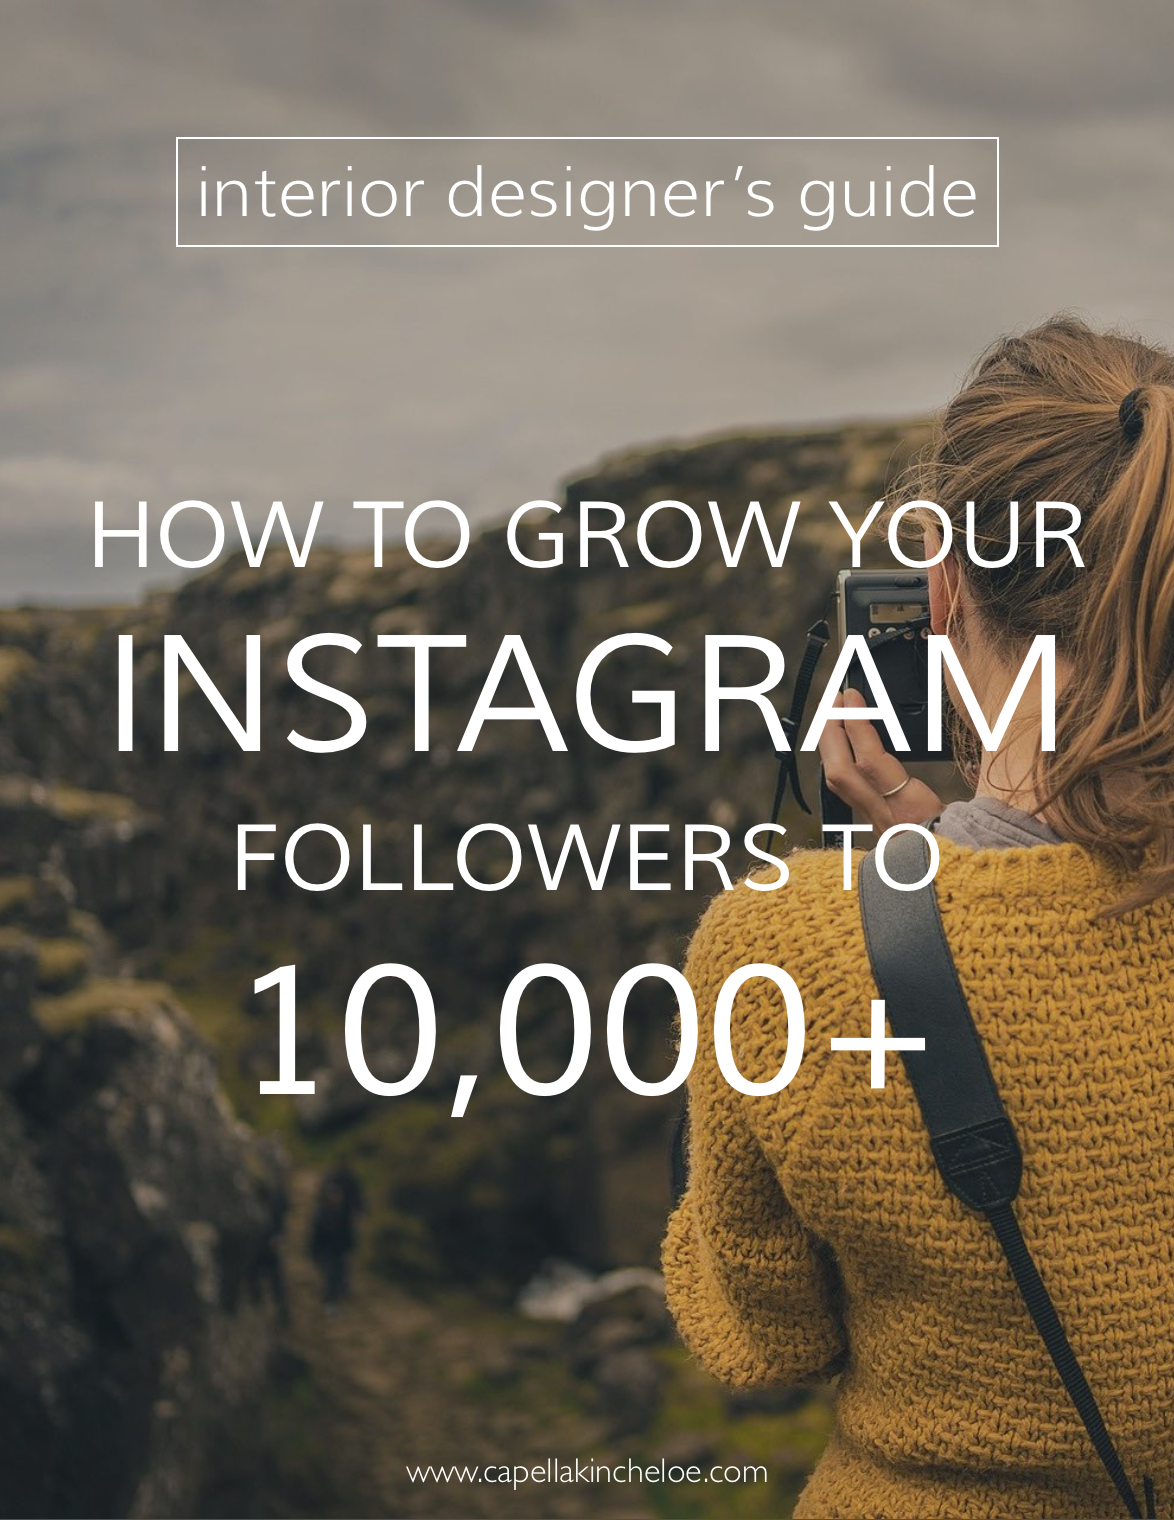 Learn How To Grow Your Instagram Followers Interior Design Business From An